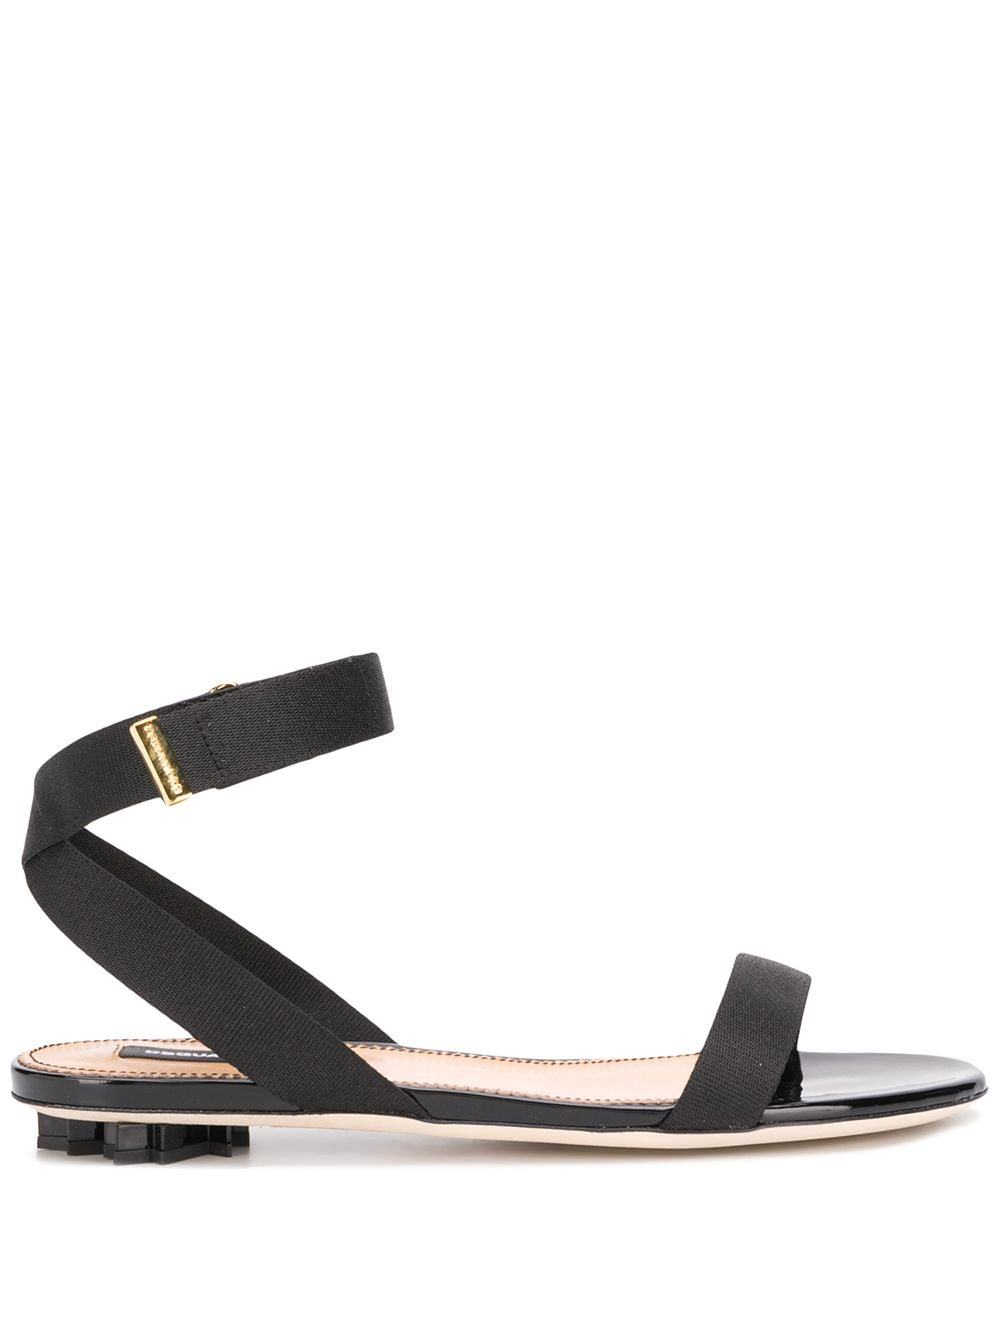 DSQUARED2 women leaf low sandal black